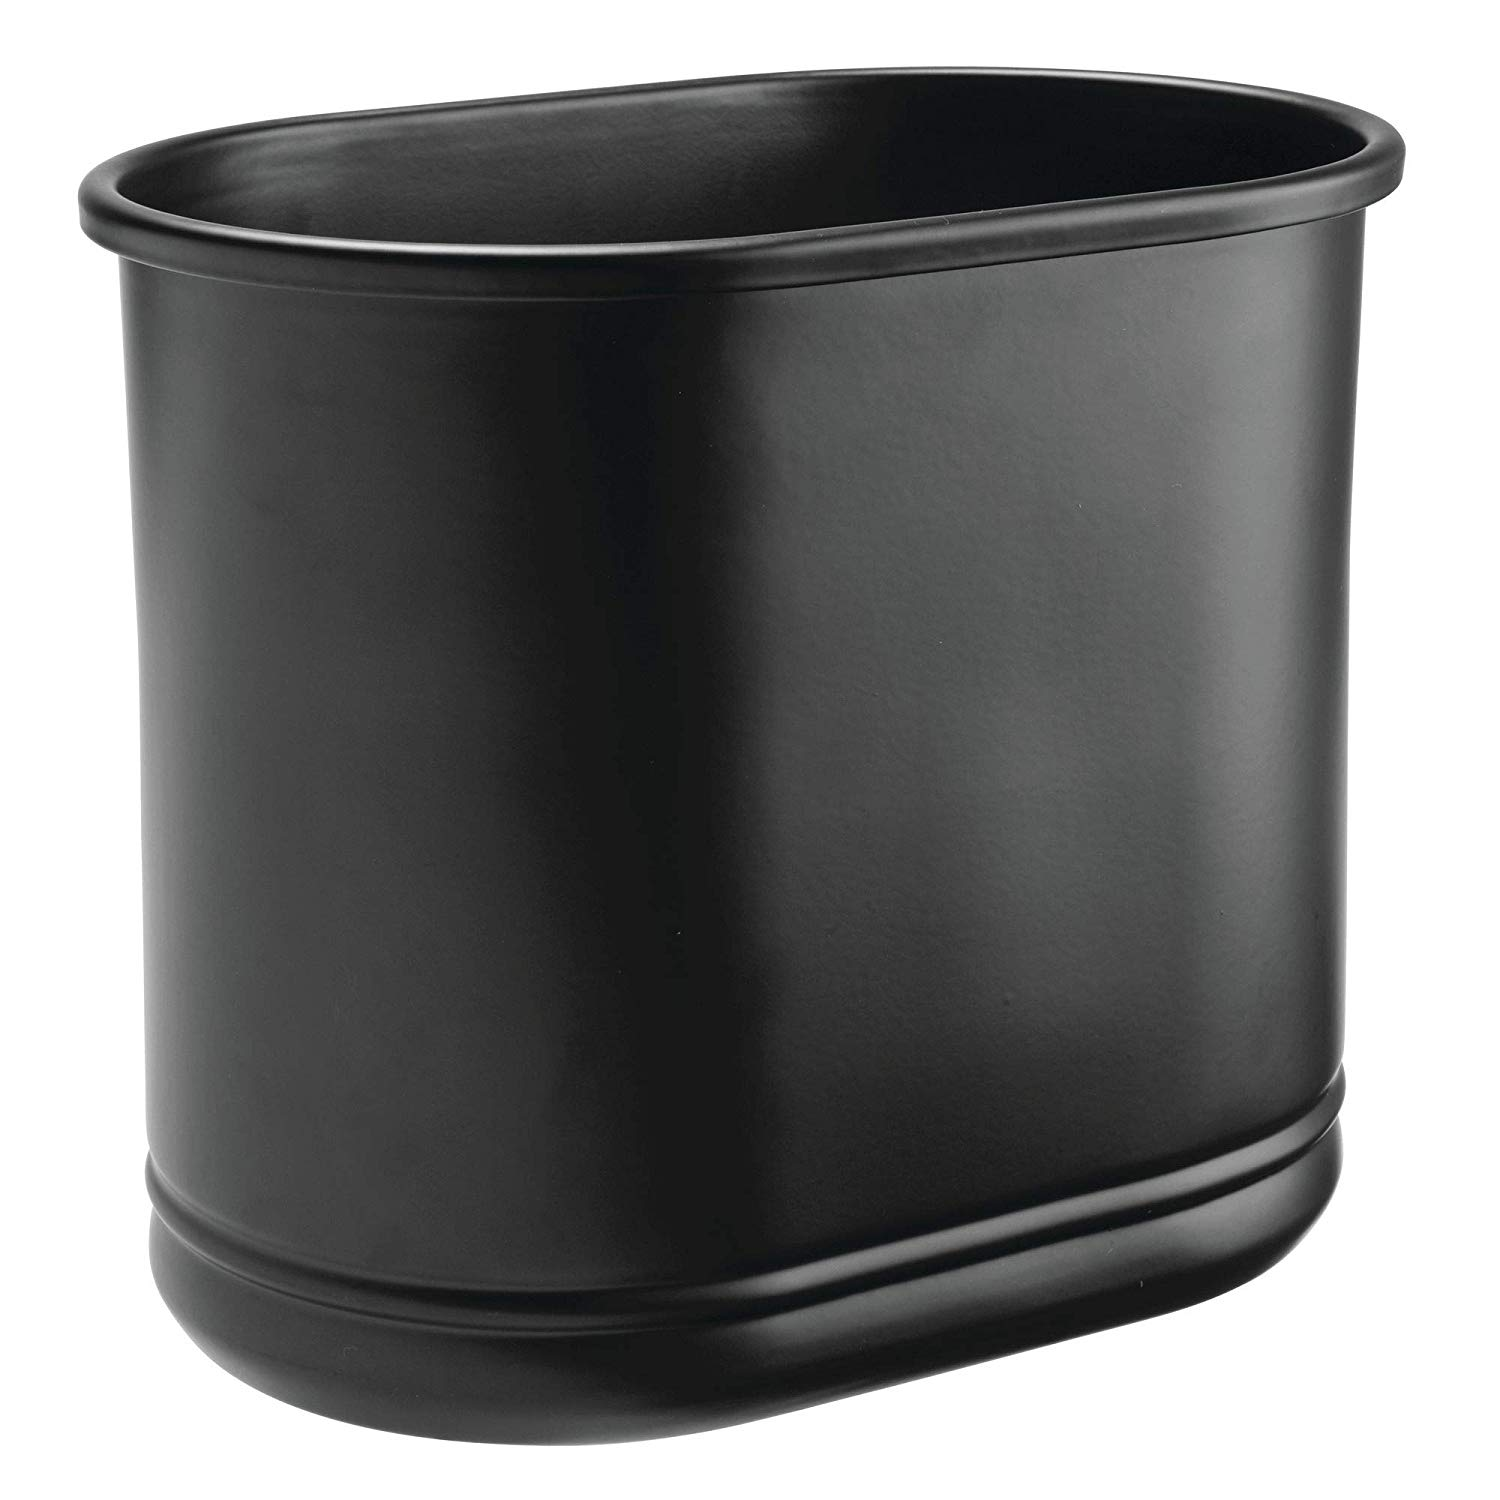 Get Quotations · MDesign Slim Oval Metal Trash Can, Small Wastebasket,  Garbage Receptacle Bin For Bathrooms,